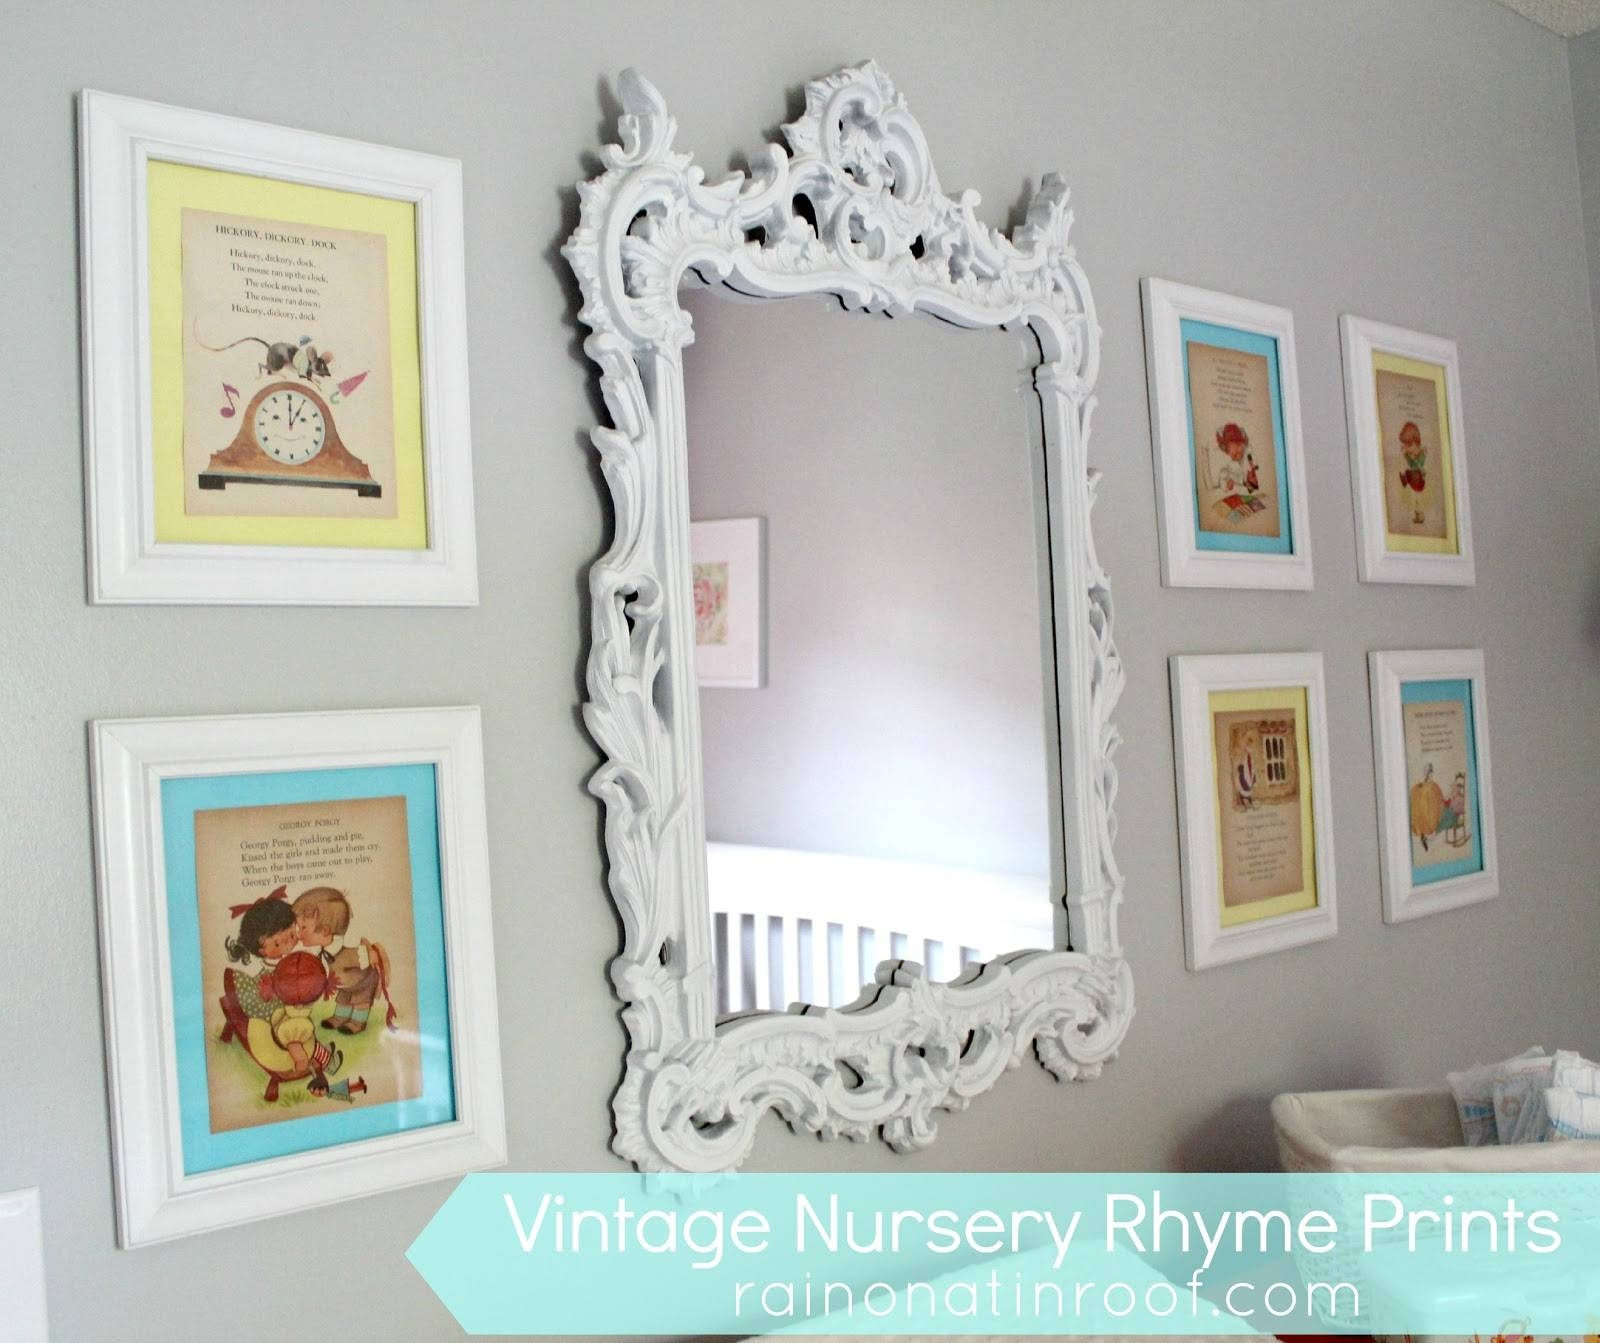 Diy Vintage Nursery Rhyme Prints: Simple & Cheap Throughout 2017 Nursery Framed Wall Art (View 11 of 20)